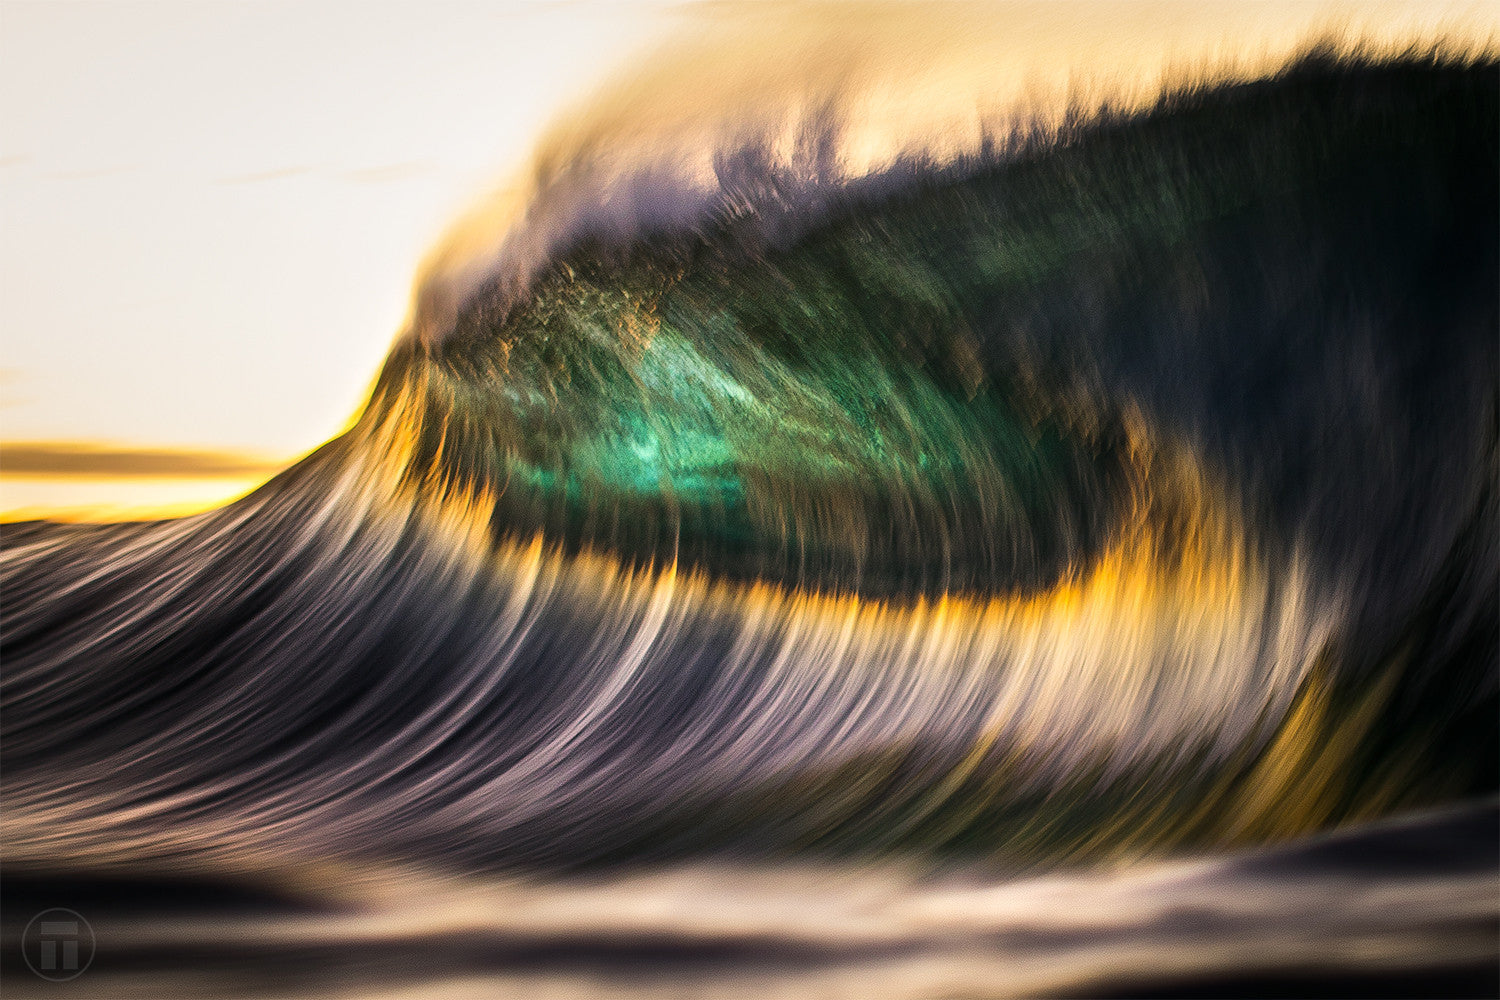 Ocean Art Photography by Thurston Photo